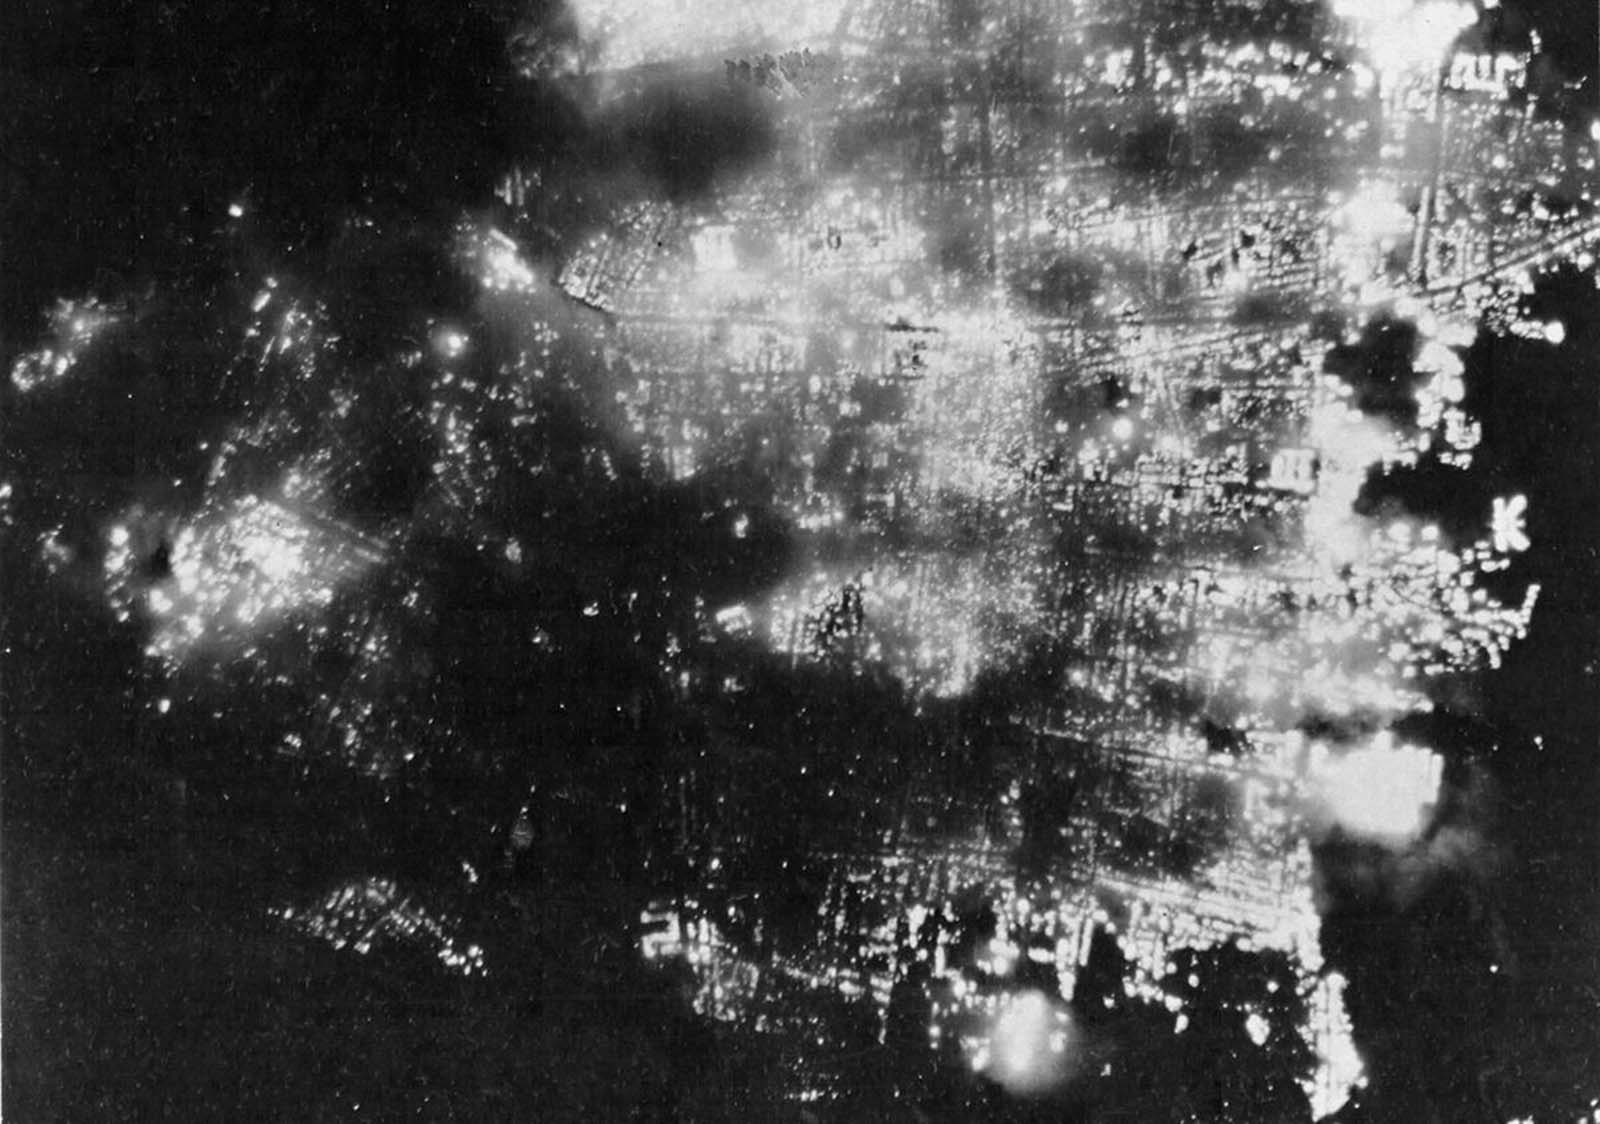 A night view of burning Toyama, Japan on August 1, 1945, after 173 American B-29 bombers dropped incendiary bombs on the city. Formerly a big producer of aluminum, the city was 95.6% demolished.